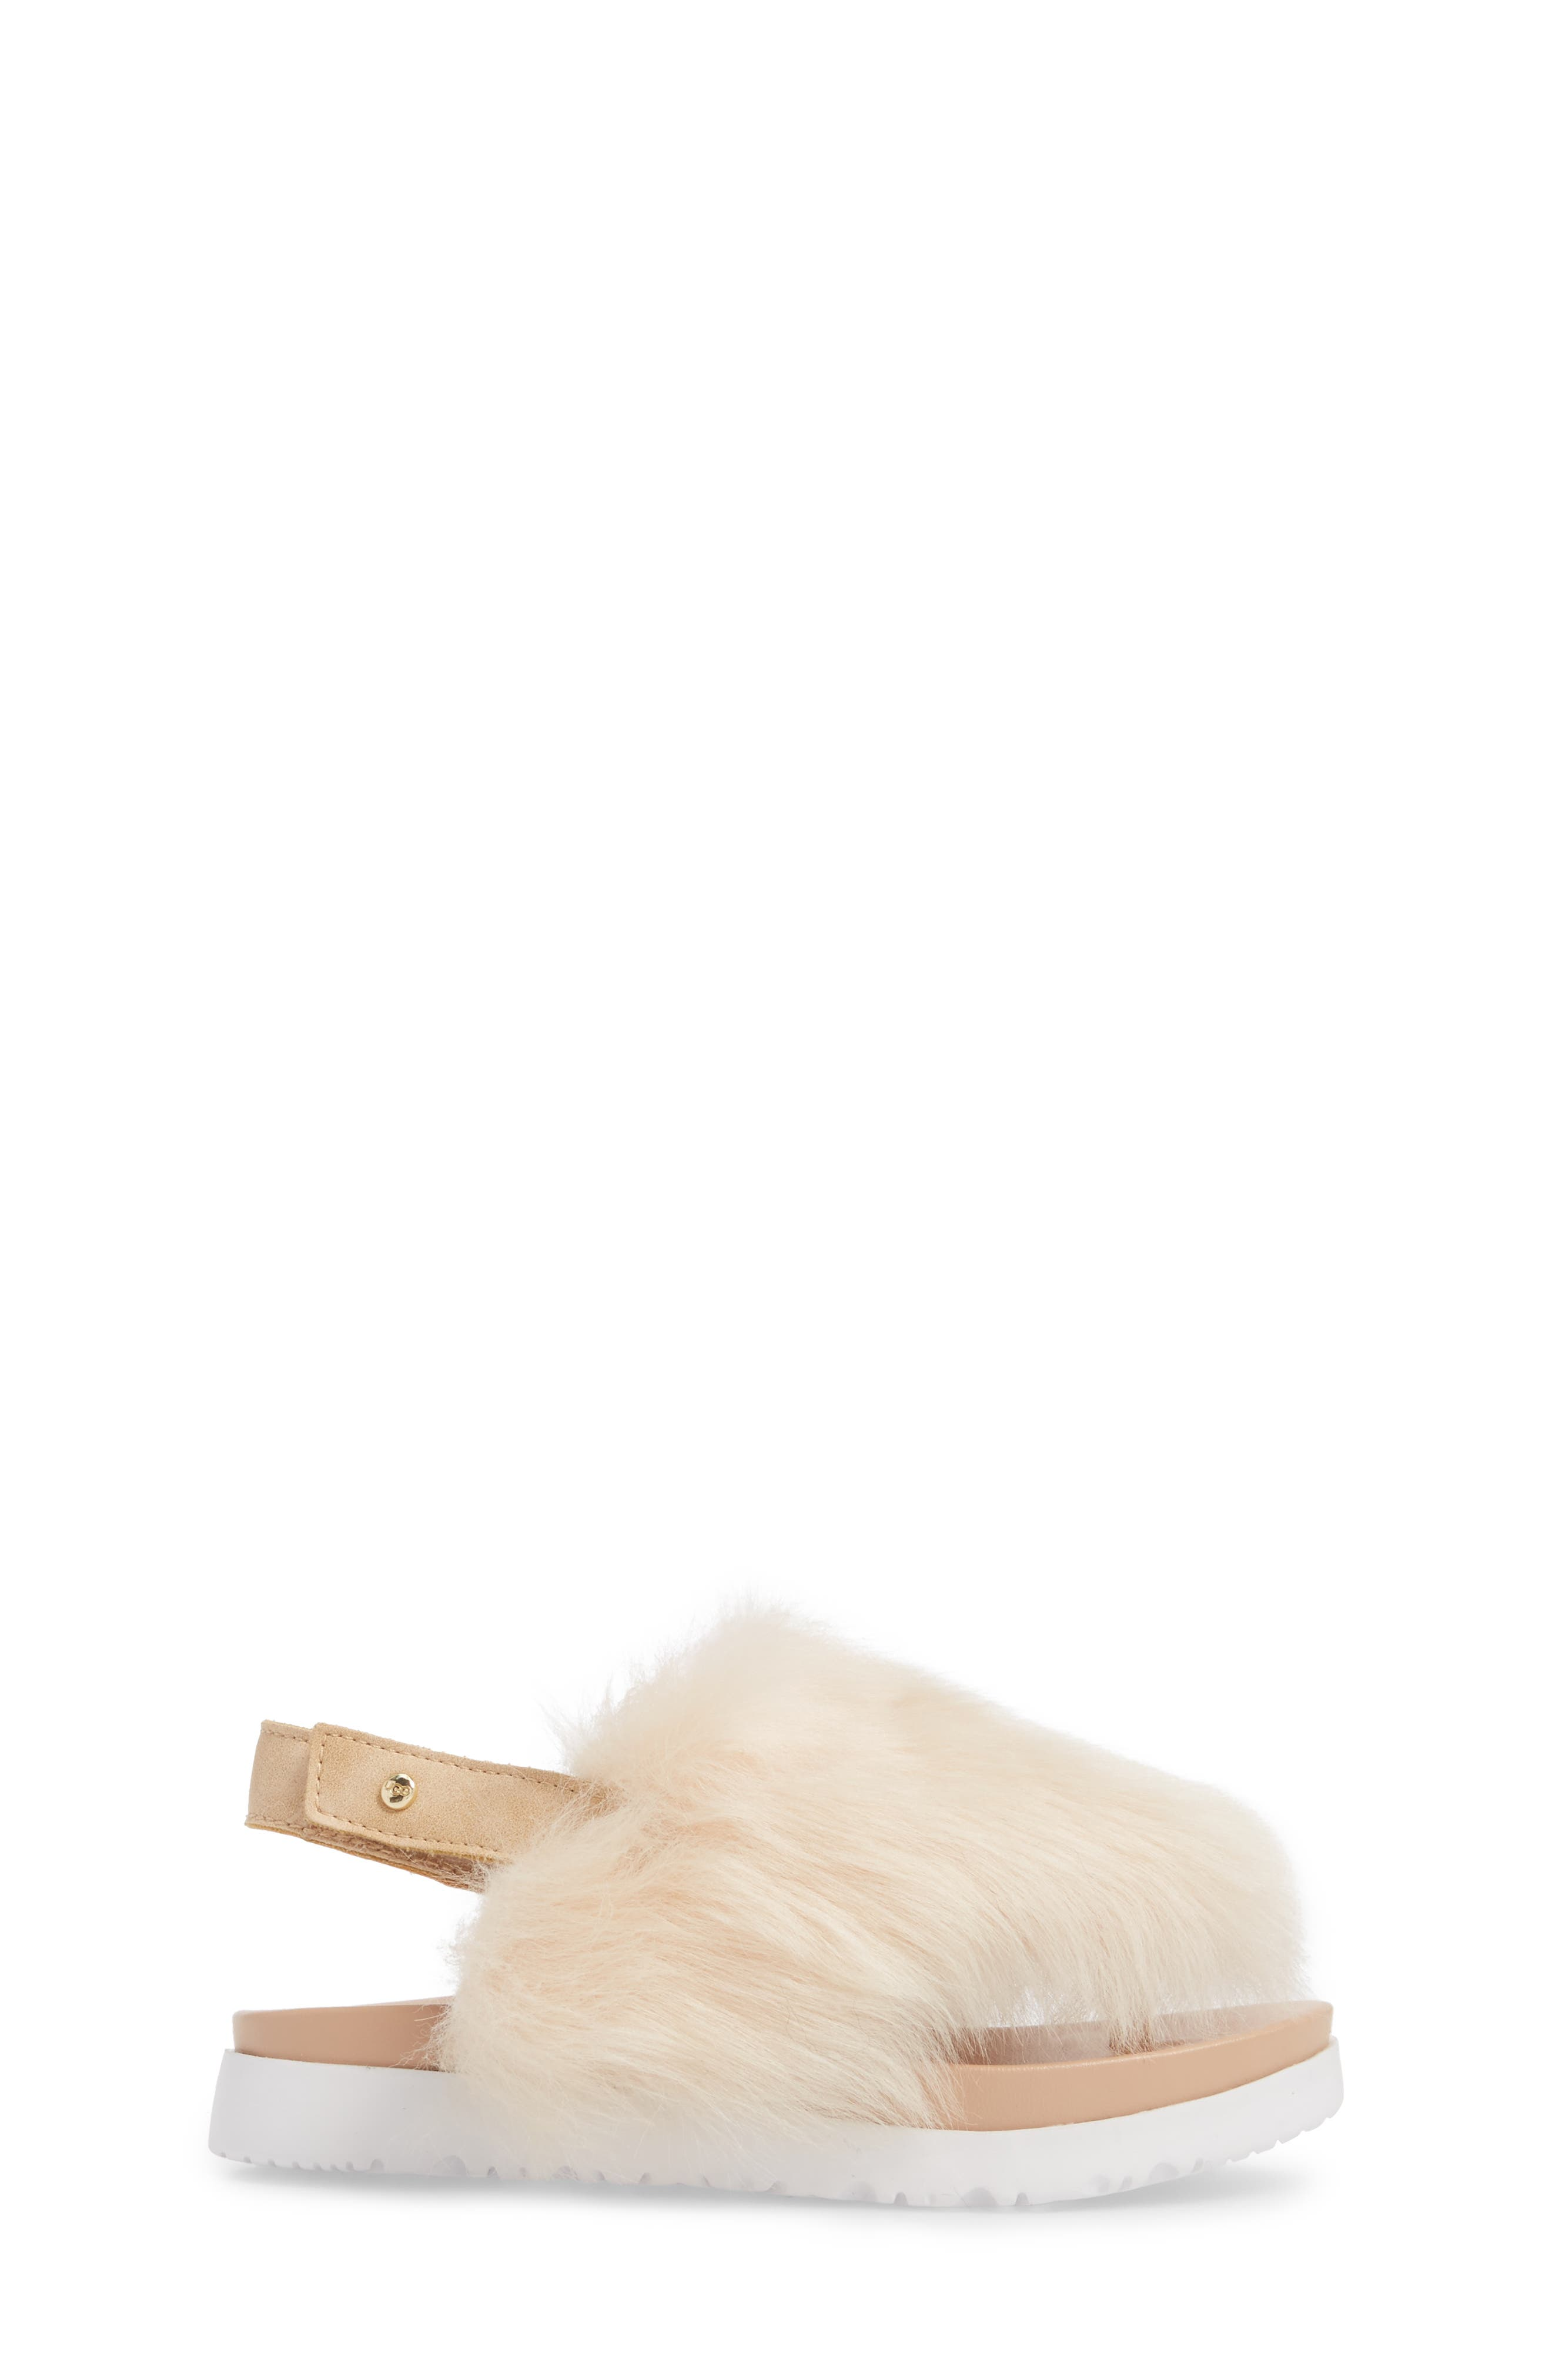 UGG<SUP>®</SUP>, Holly Genuine Shearling Sandal, Alternate thumbnail 3, color, SOFT OCHRE